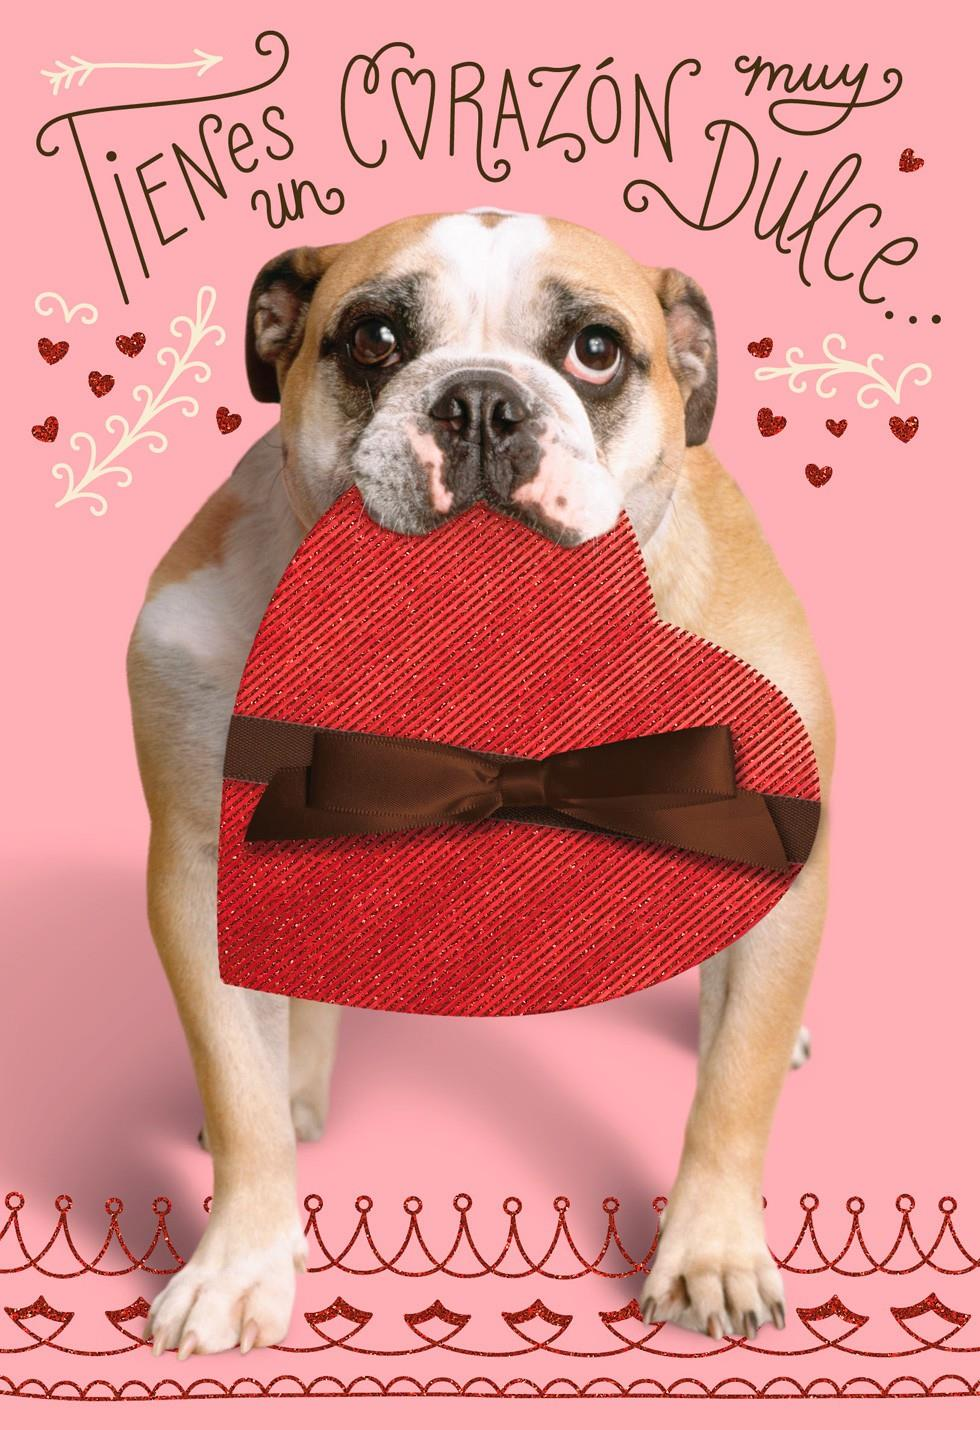 bulldog with candy heart spanish valentines day card - Dog Valentines Day Cards